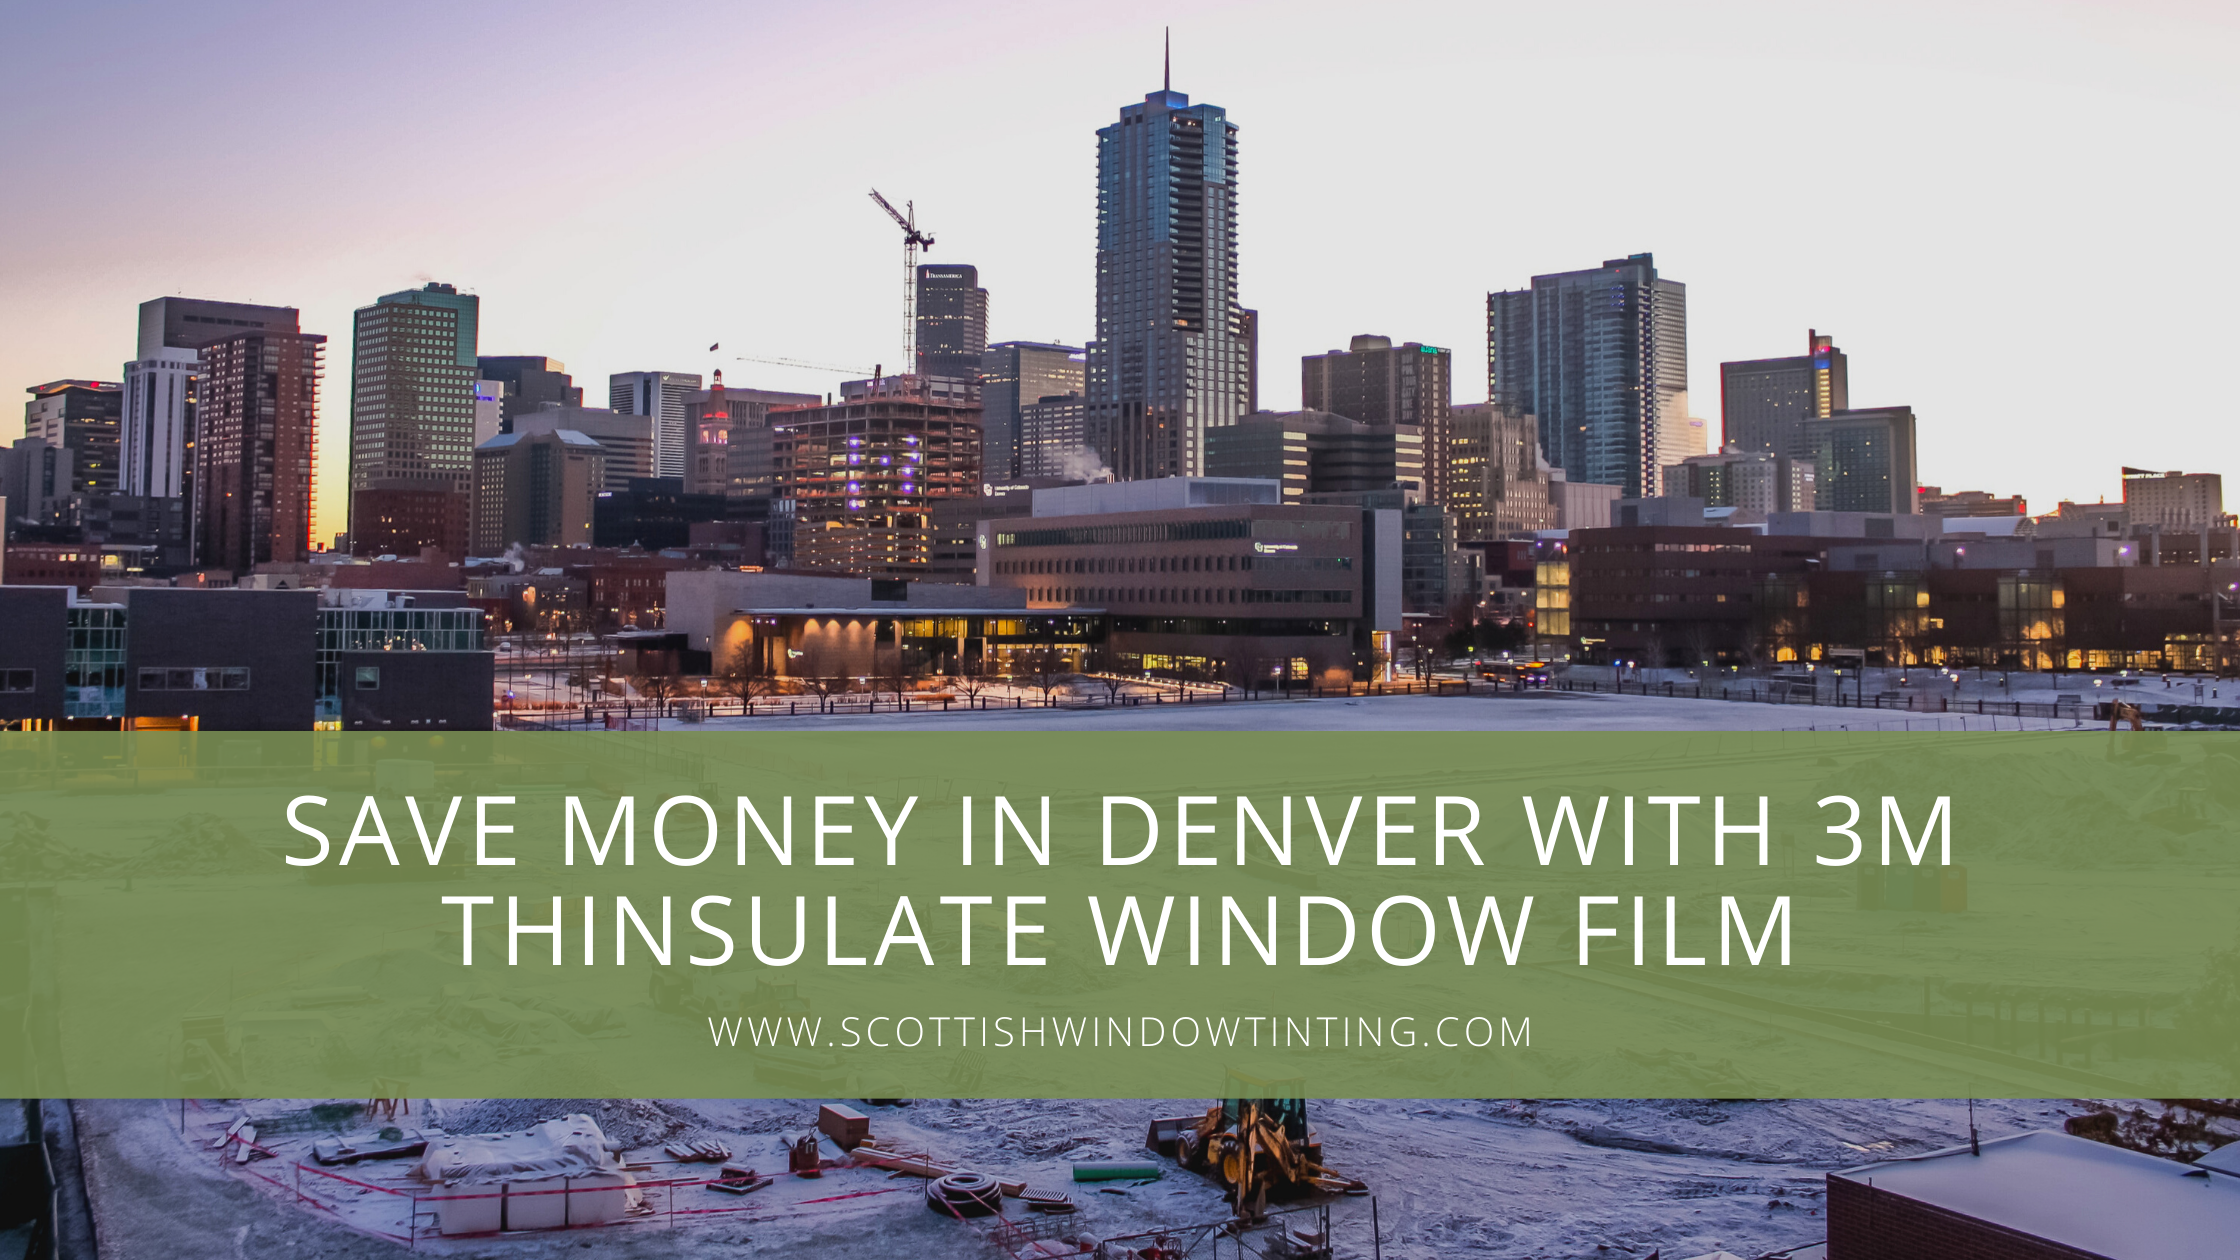 Save Money in Denver with 3M Thinsulate Window Film